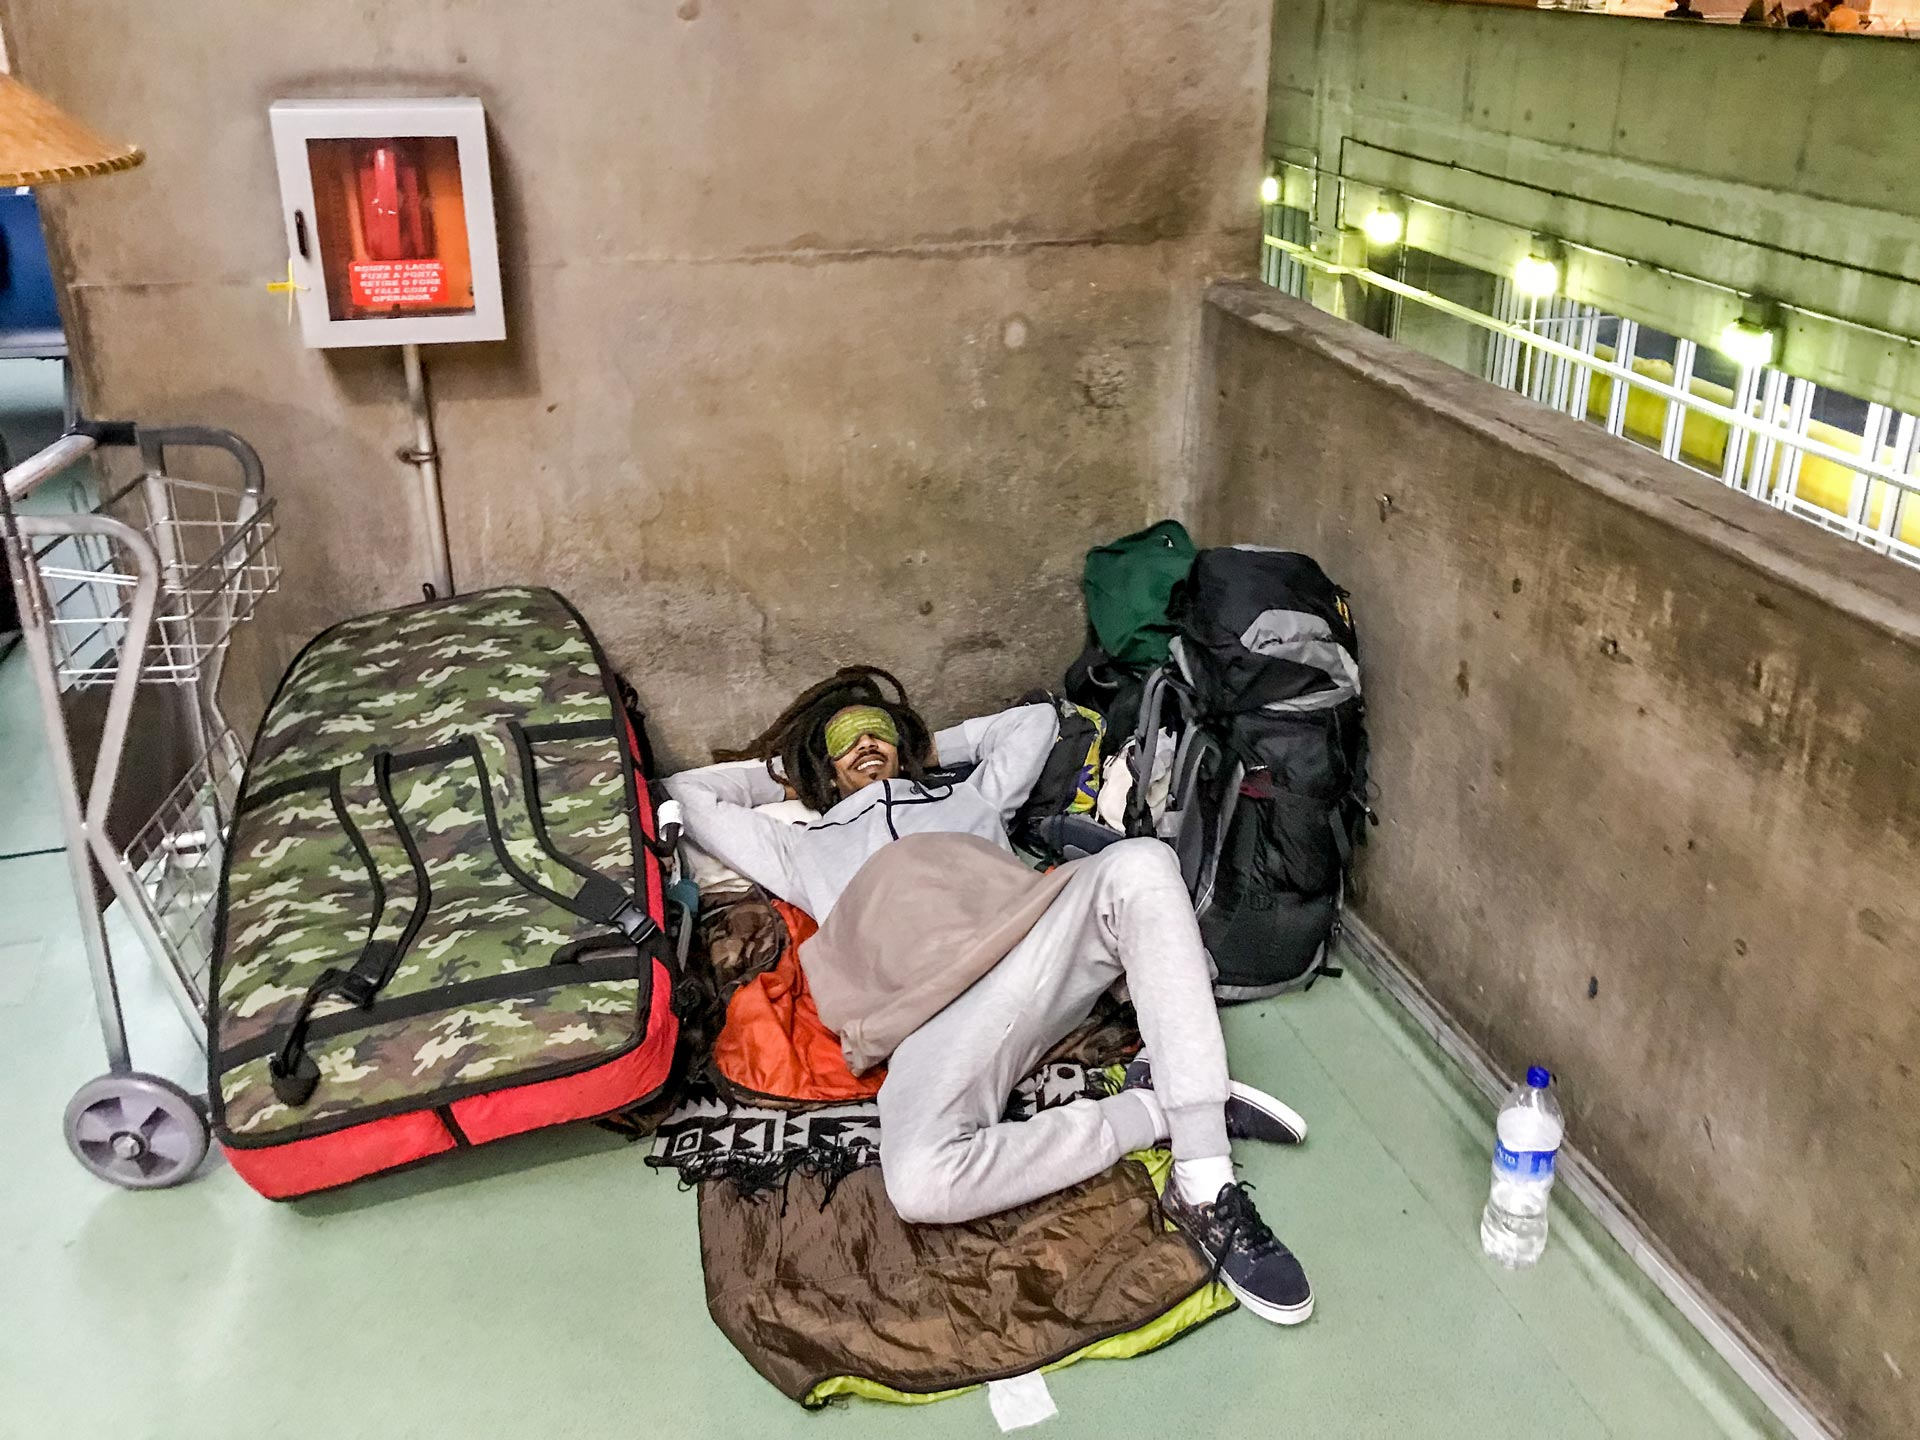 Rastaman spending night at bus terminal in São Paulo, Brazil